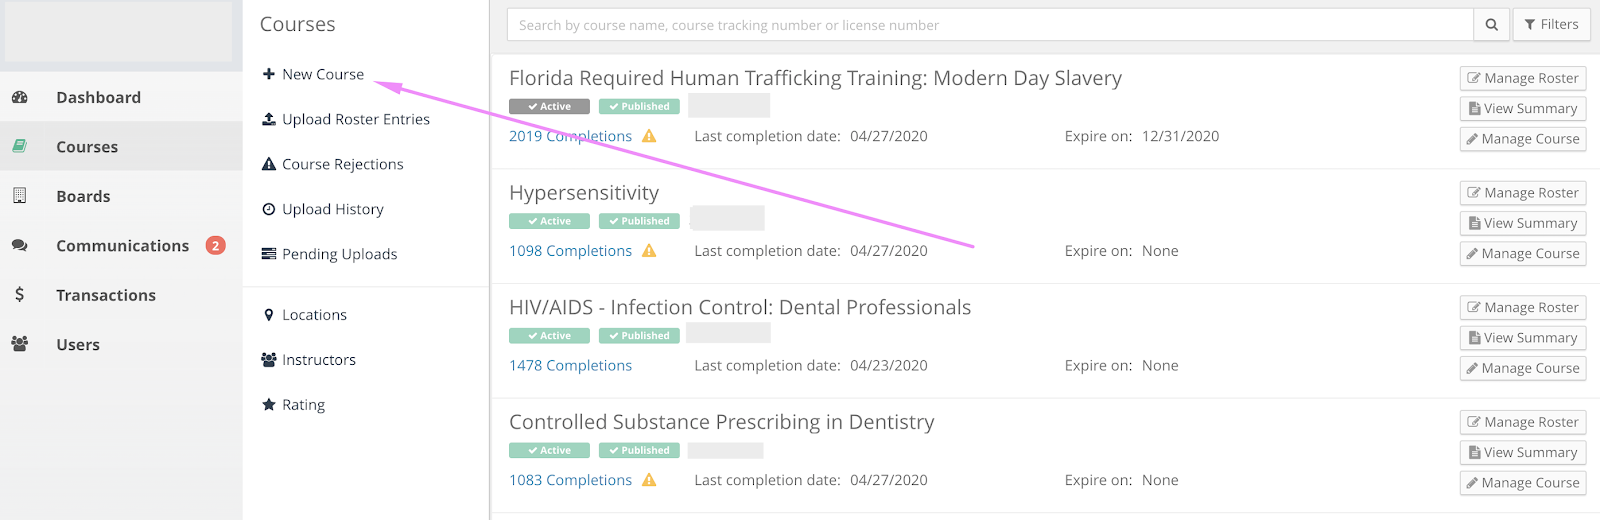 Screenshot of the provider course list page with an arrow pointing to the New Course link.